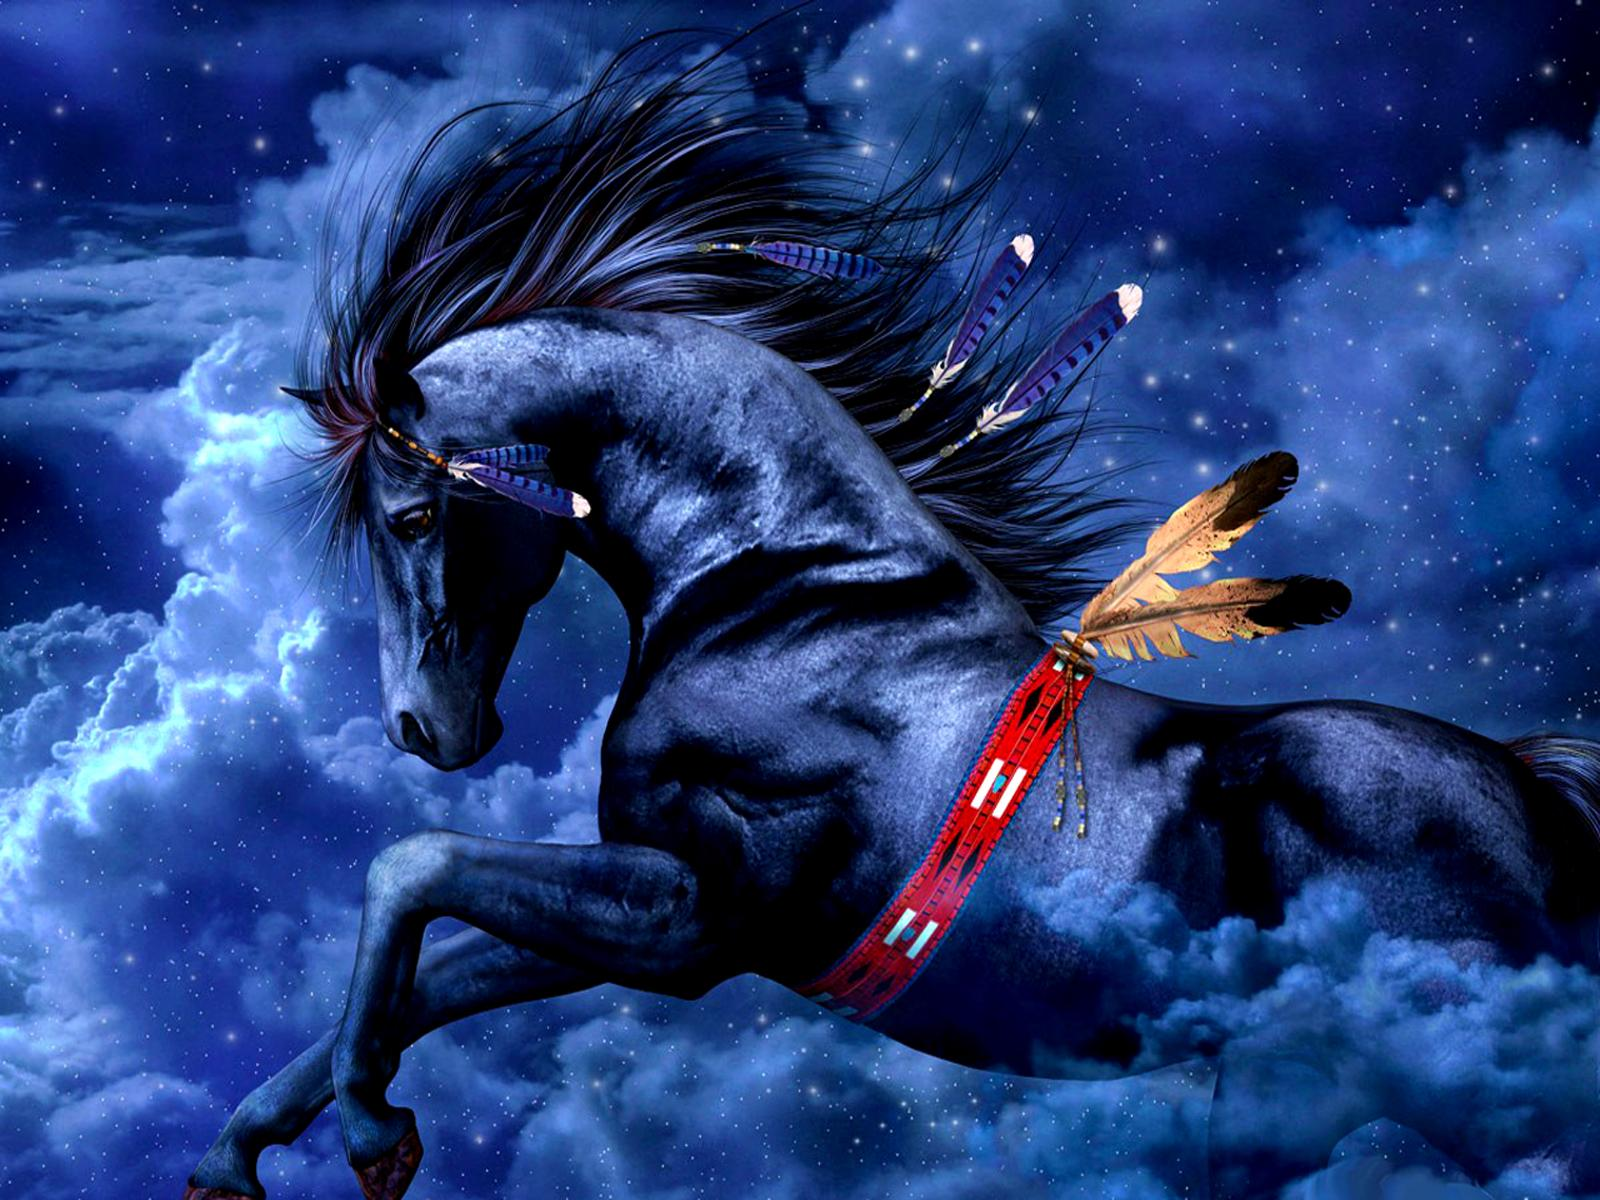 Horse Fantasy wallpapers HD quality